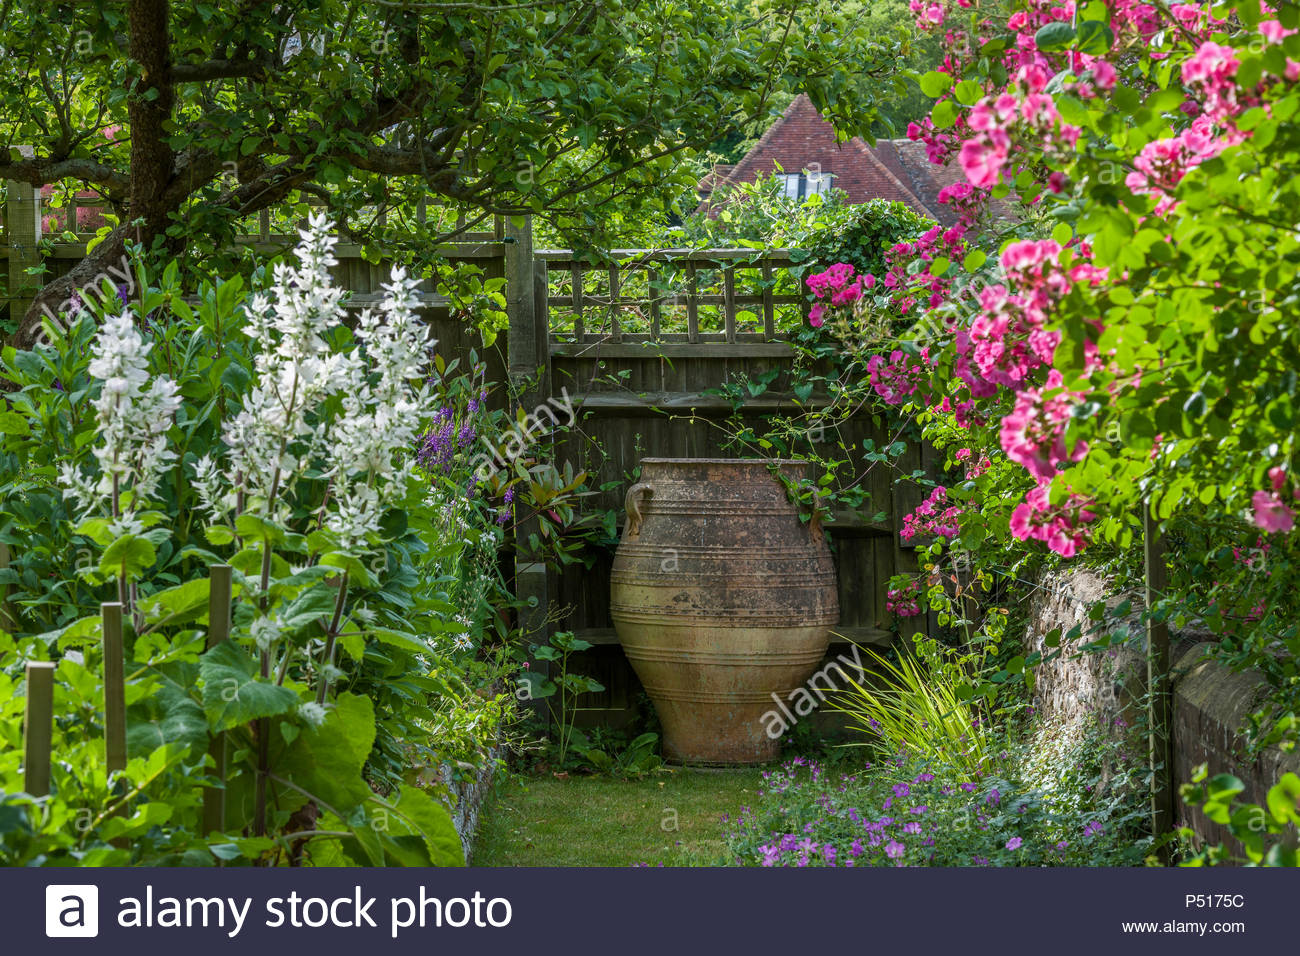 Antique pot as focal point - Stock Image